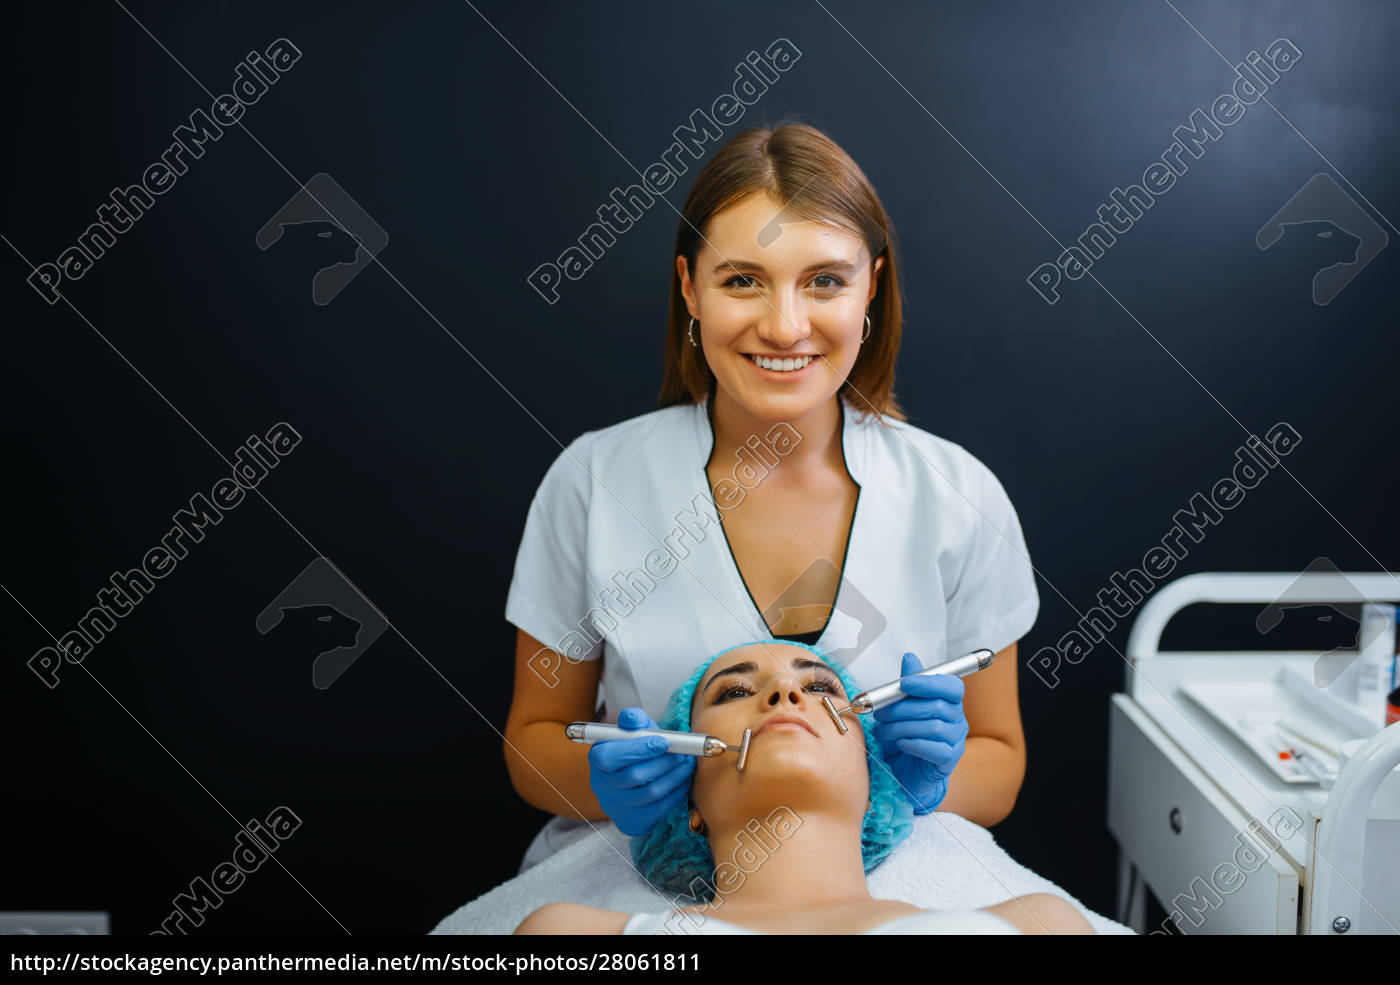 cosmetician, smoothes, face, after, botox, injections - 28061811